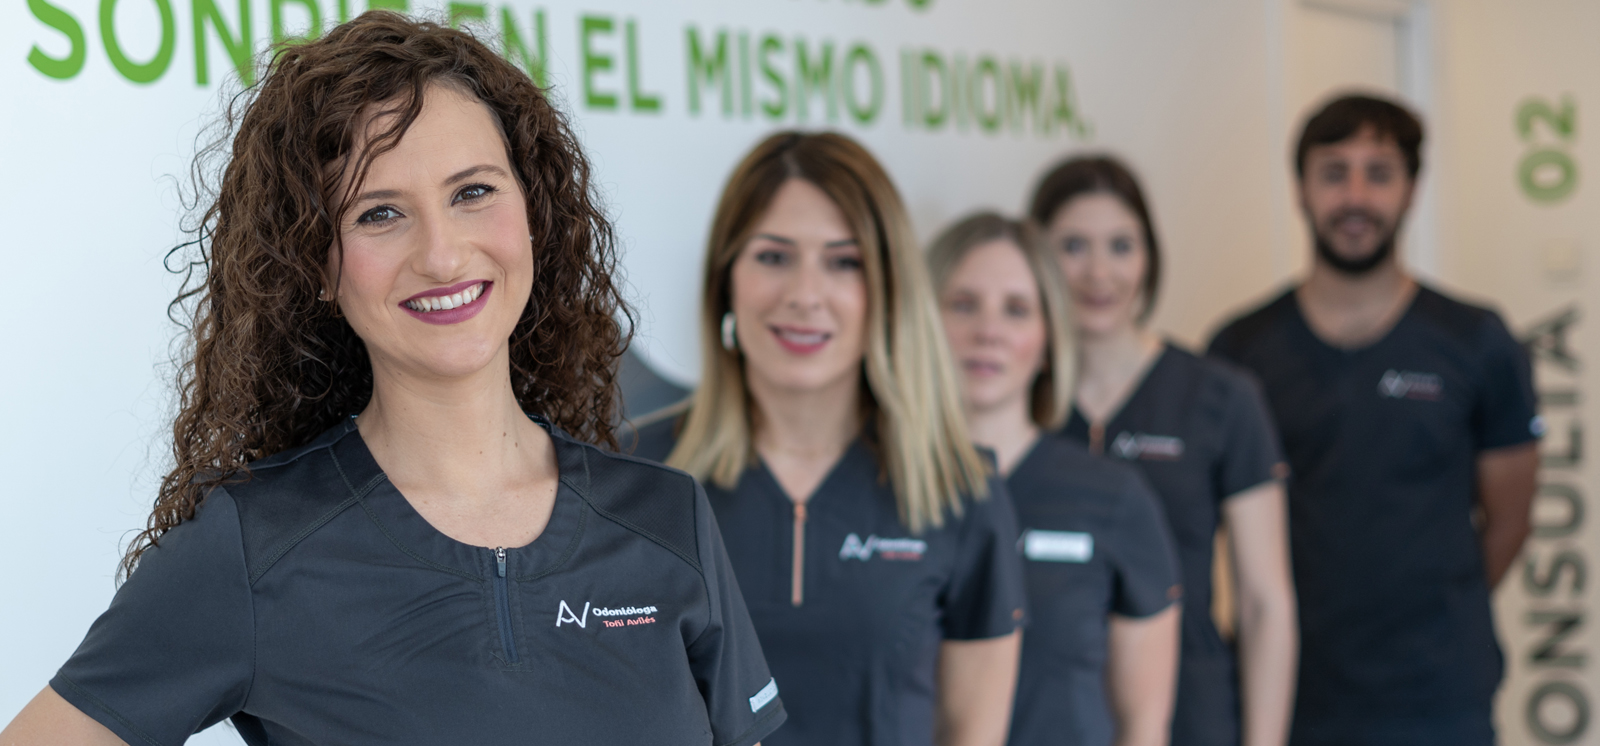 clinica dental Murcia